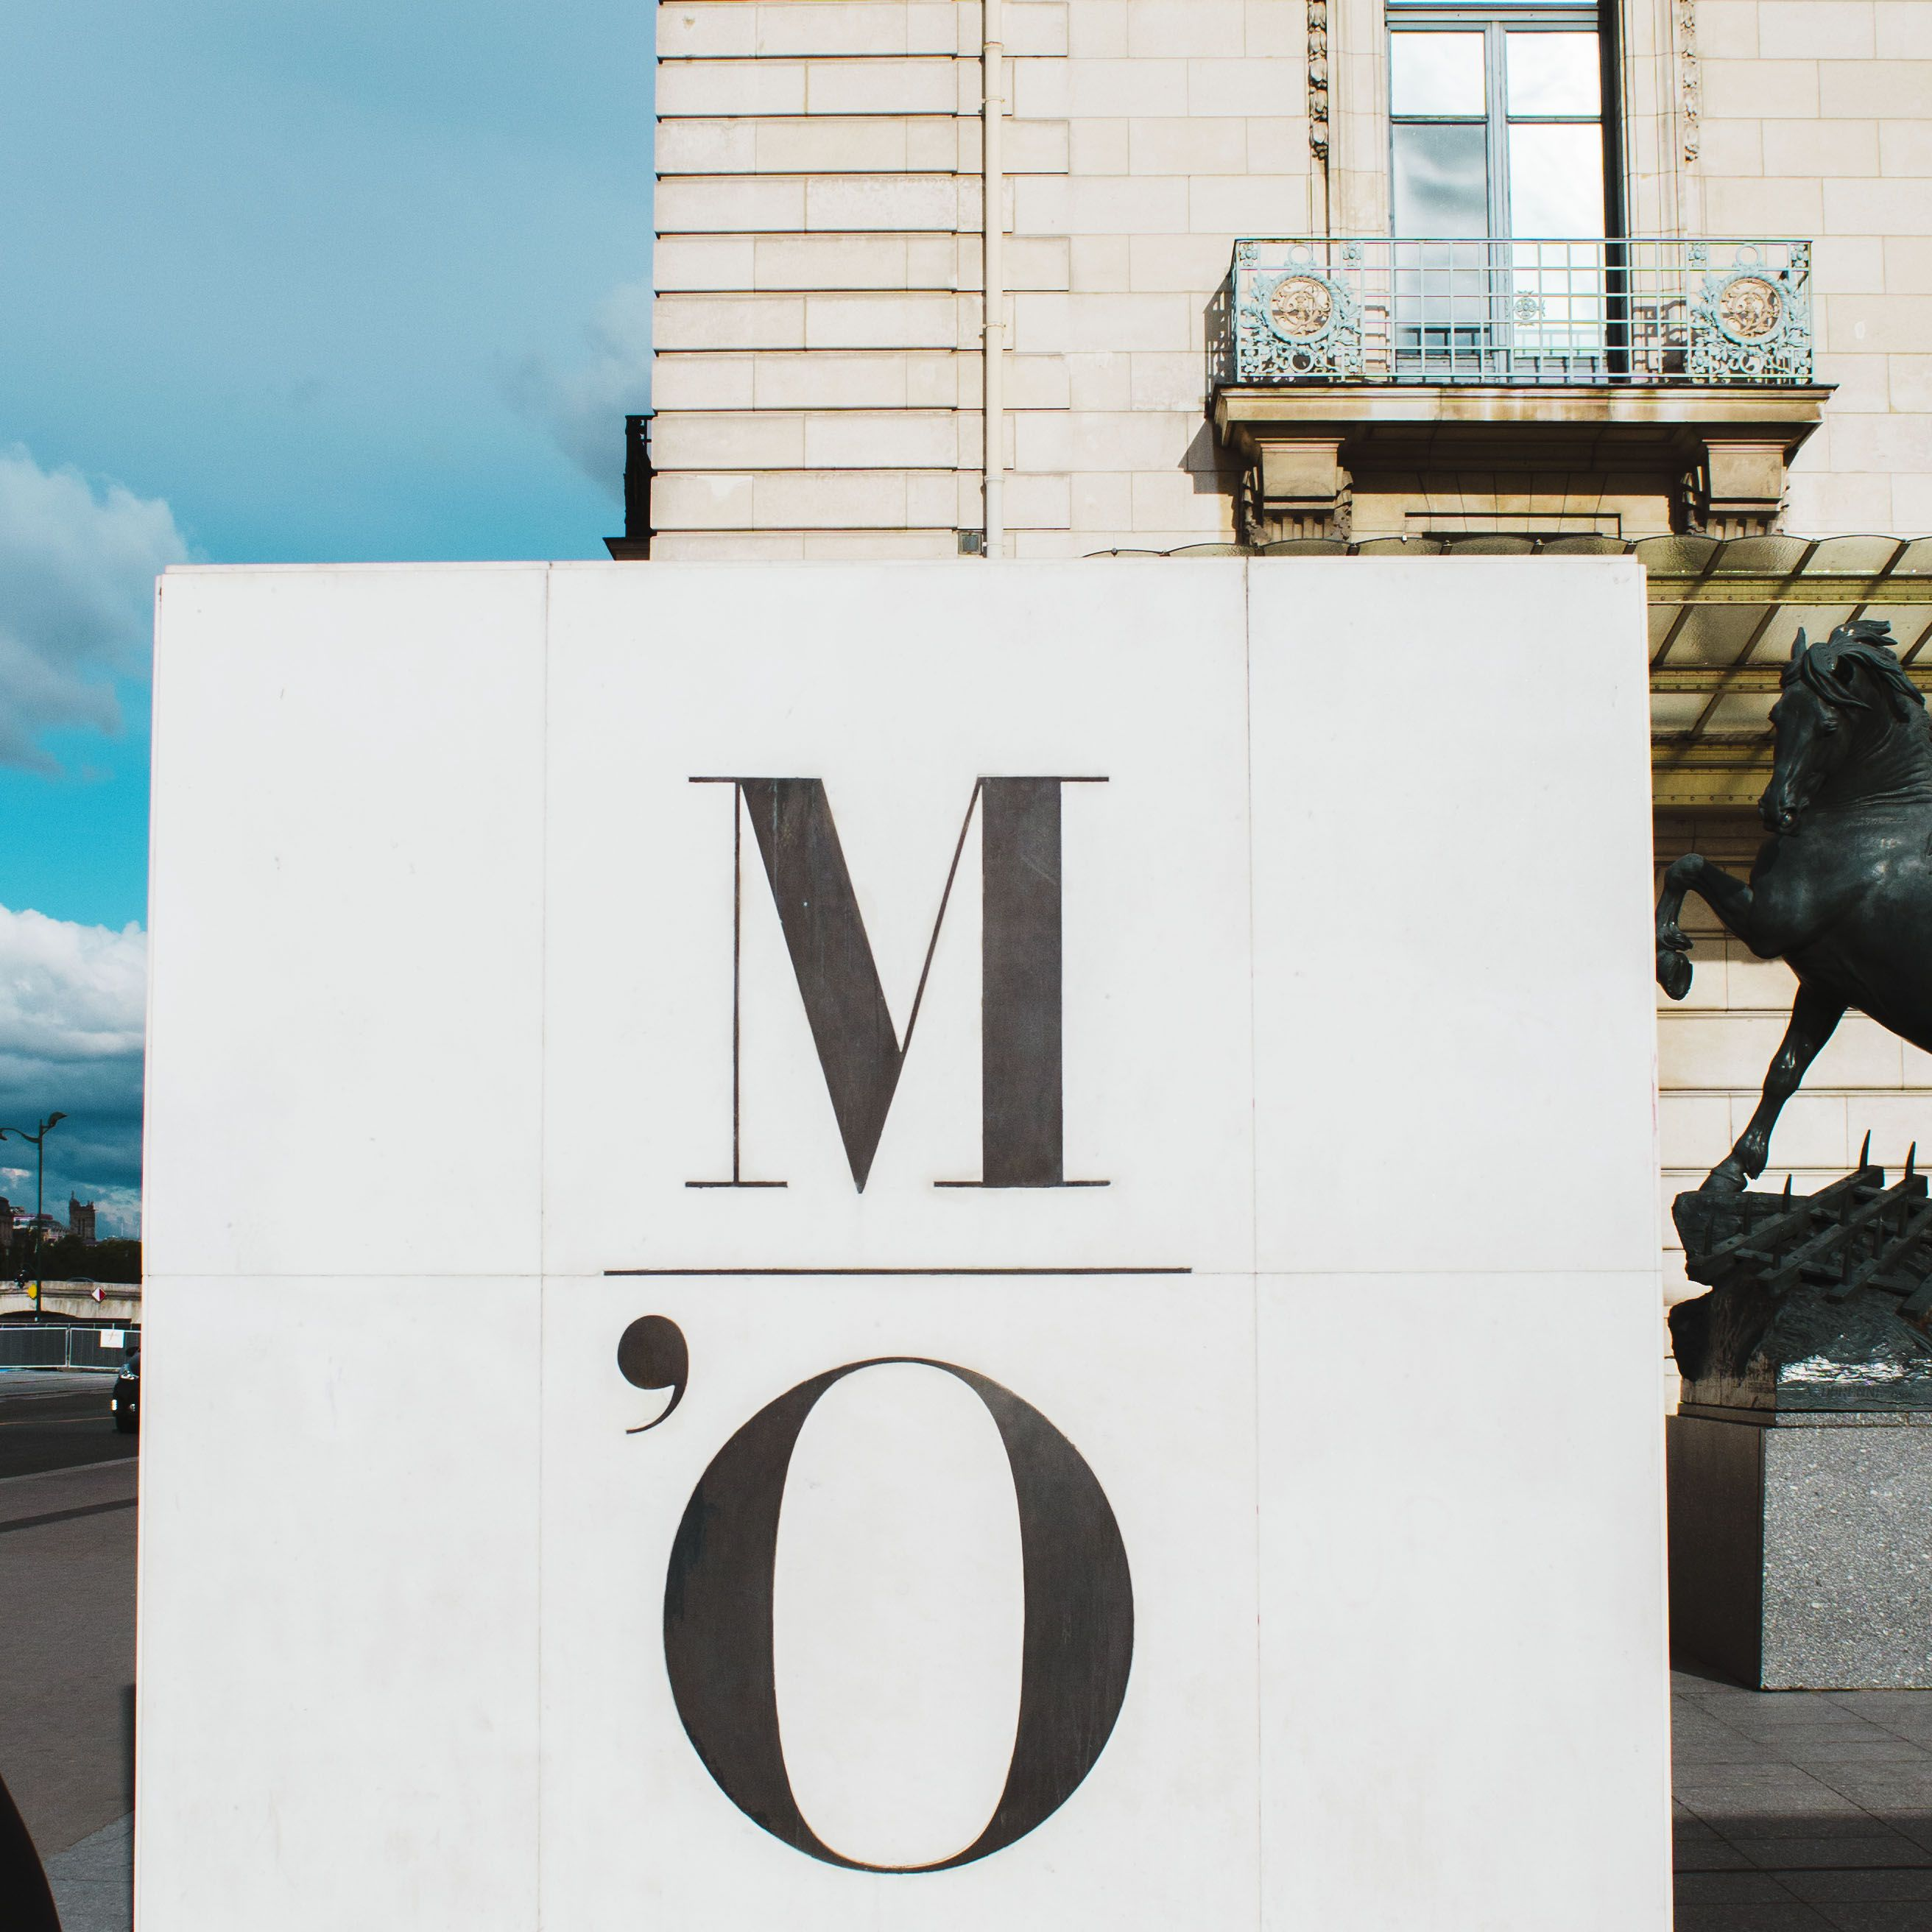 11 Tips to Make the Most of the Musée d'Orsay in Paris